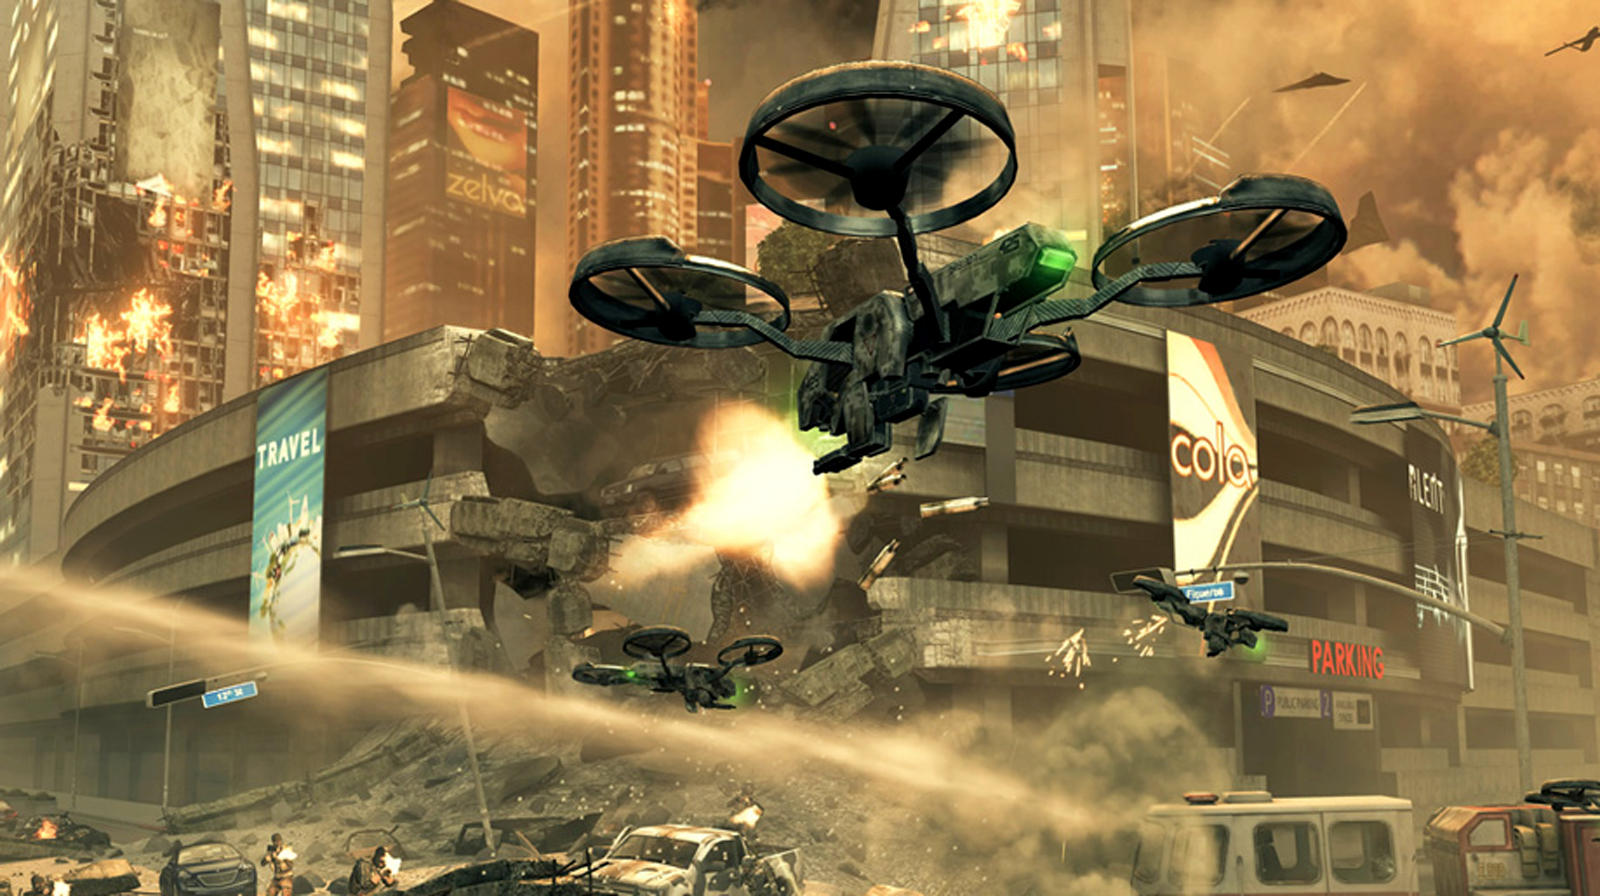 quadrotor helicopter with Call Of Duty Black Ops 2 Hd Wallpapers on Drone M c3 a1laga Vivedronerc 28 likewise Watch further Vehicles likewise Arcturus Introduces Jump System Adds Vtol Capability To Fixed Wing Uavs as well Quad Tilt.